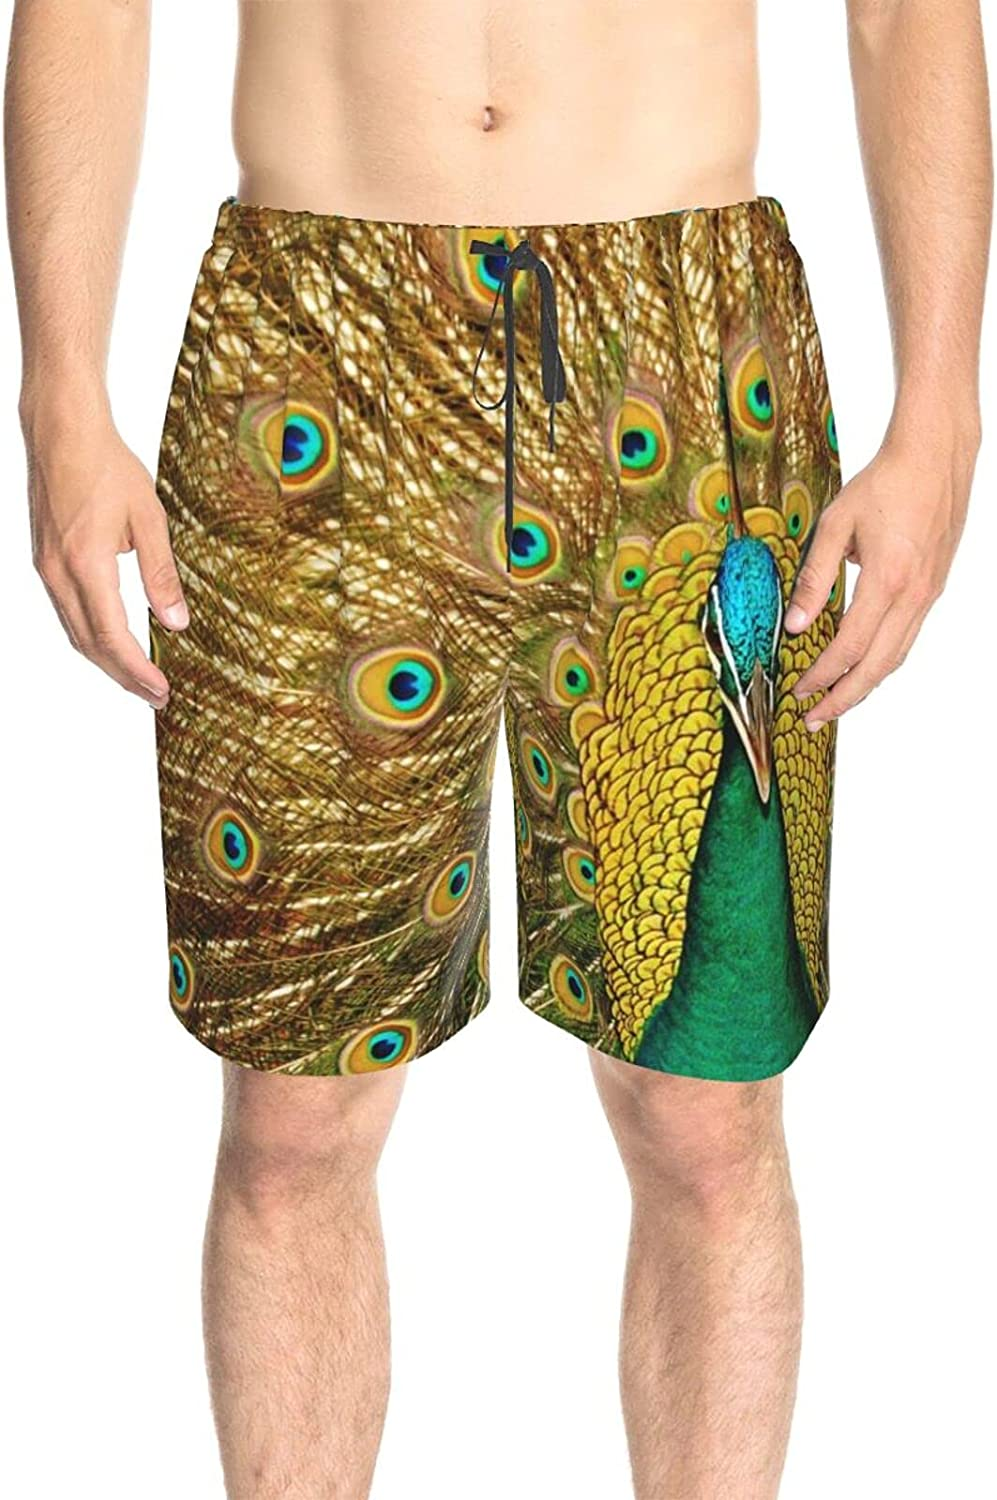 JINJUELS Men's Swim Shorts Peacock Feather Background Swim Boardshorts Fast Dry Fashion Swimming Trunks with Liner